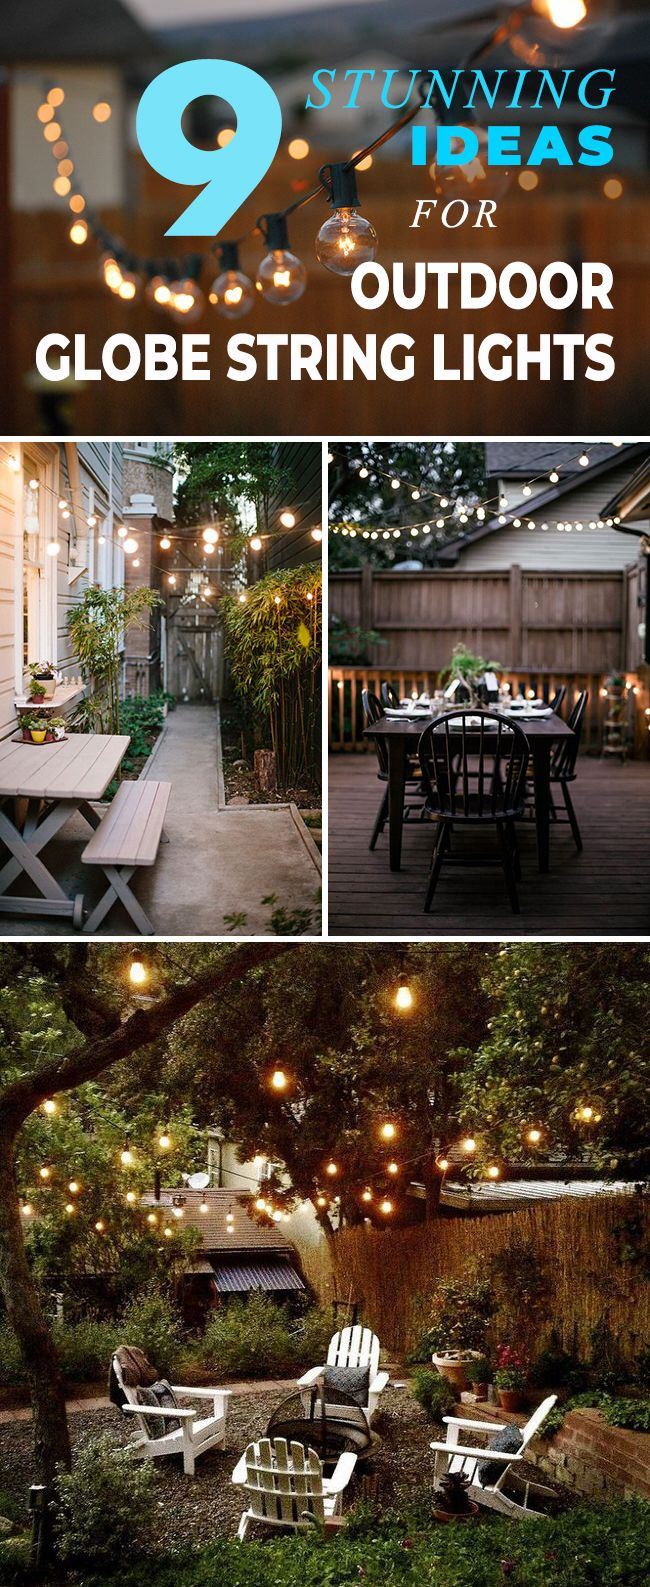 9 Stunning Ideas for Outdoor Globe String Lights! • Click thru to see how to add some ambience to your backyard with these wonderful globe string light ideas and projects! #outdoorglobestringlights #globestringlights #stringlights #globelights #outdoorlighting #patiolights #outdoorlights #outdoorambience